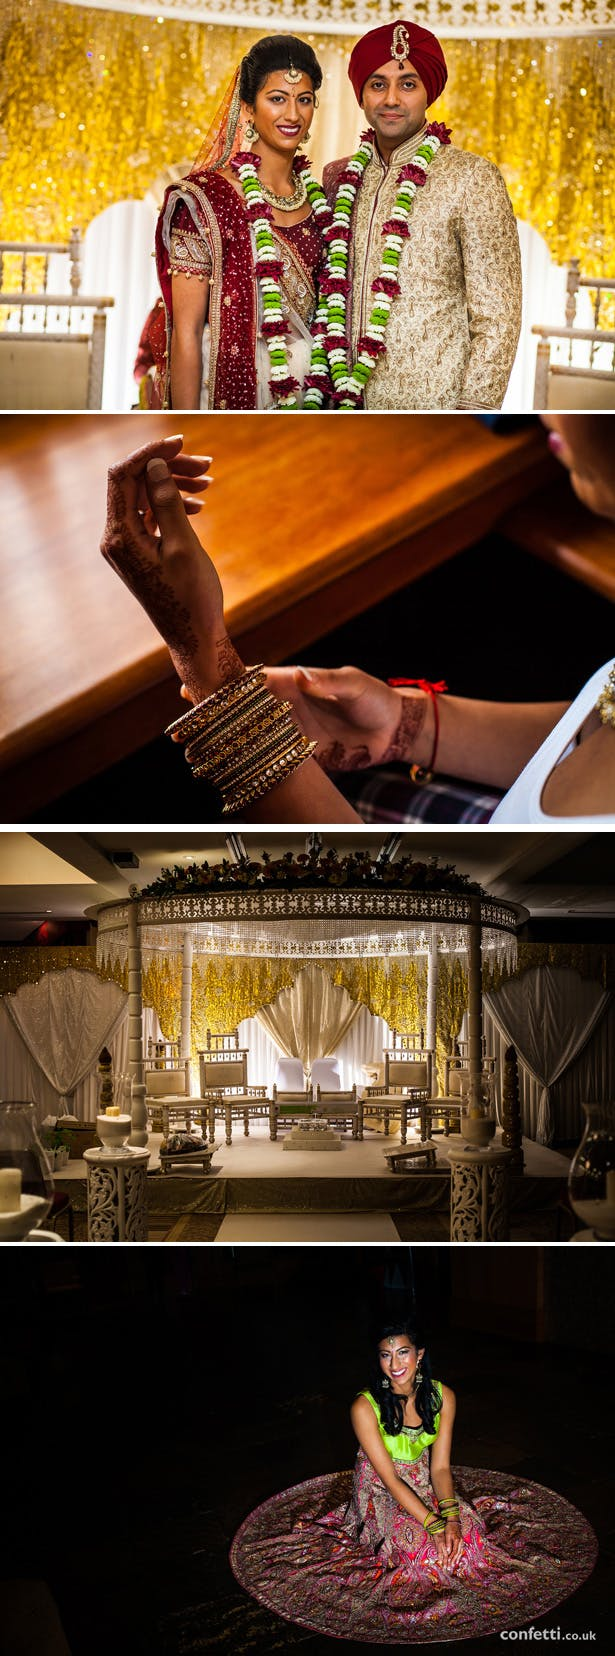 Devina And Shiv's Indian Real Wedding | Confetti.co.uk